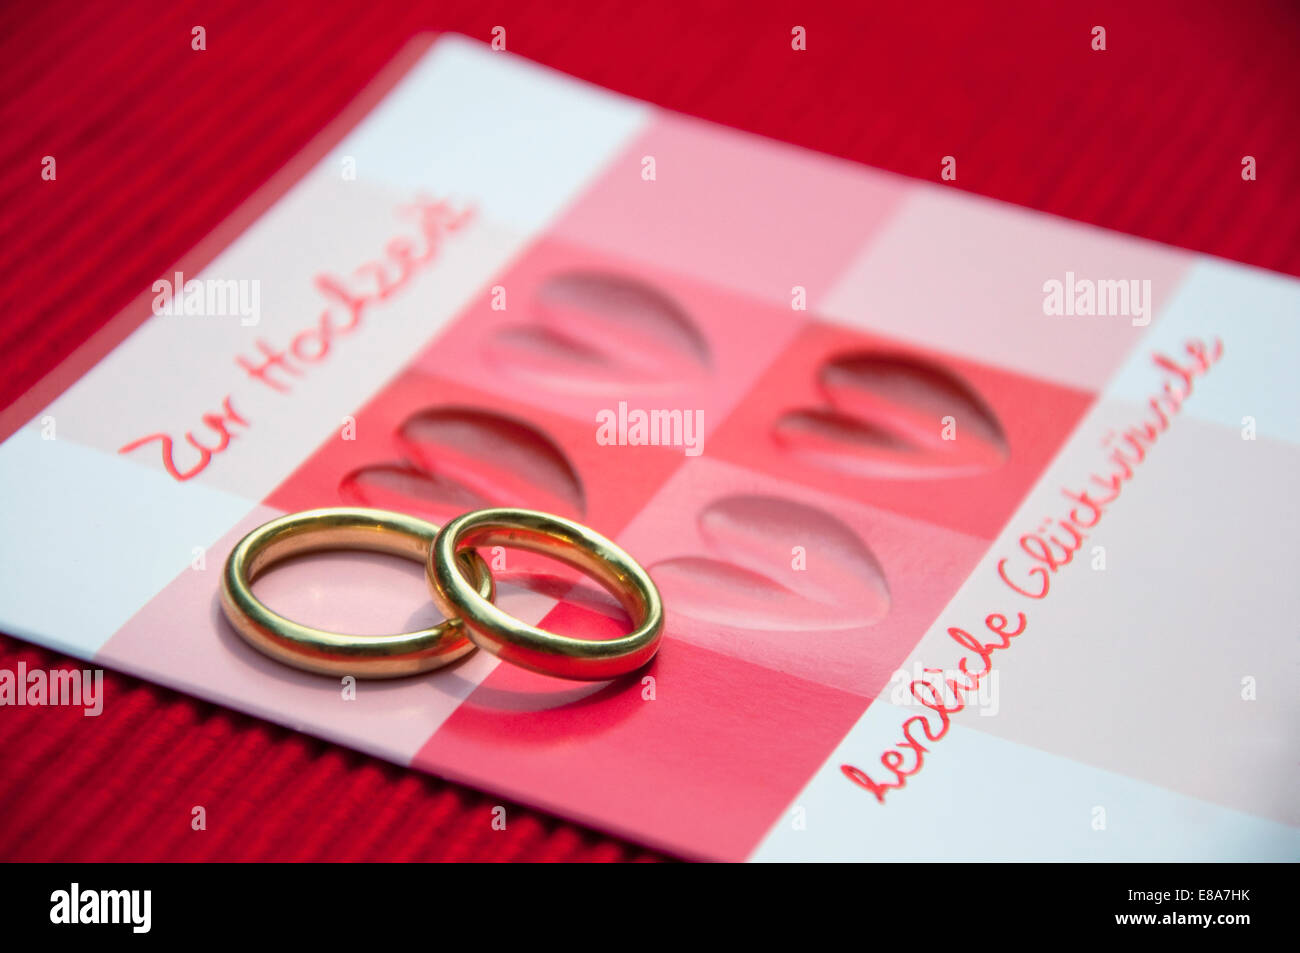 Wedding Rings On Wedding Card Stock Photos & Wedding Rings On ...